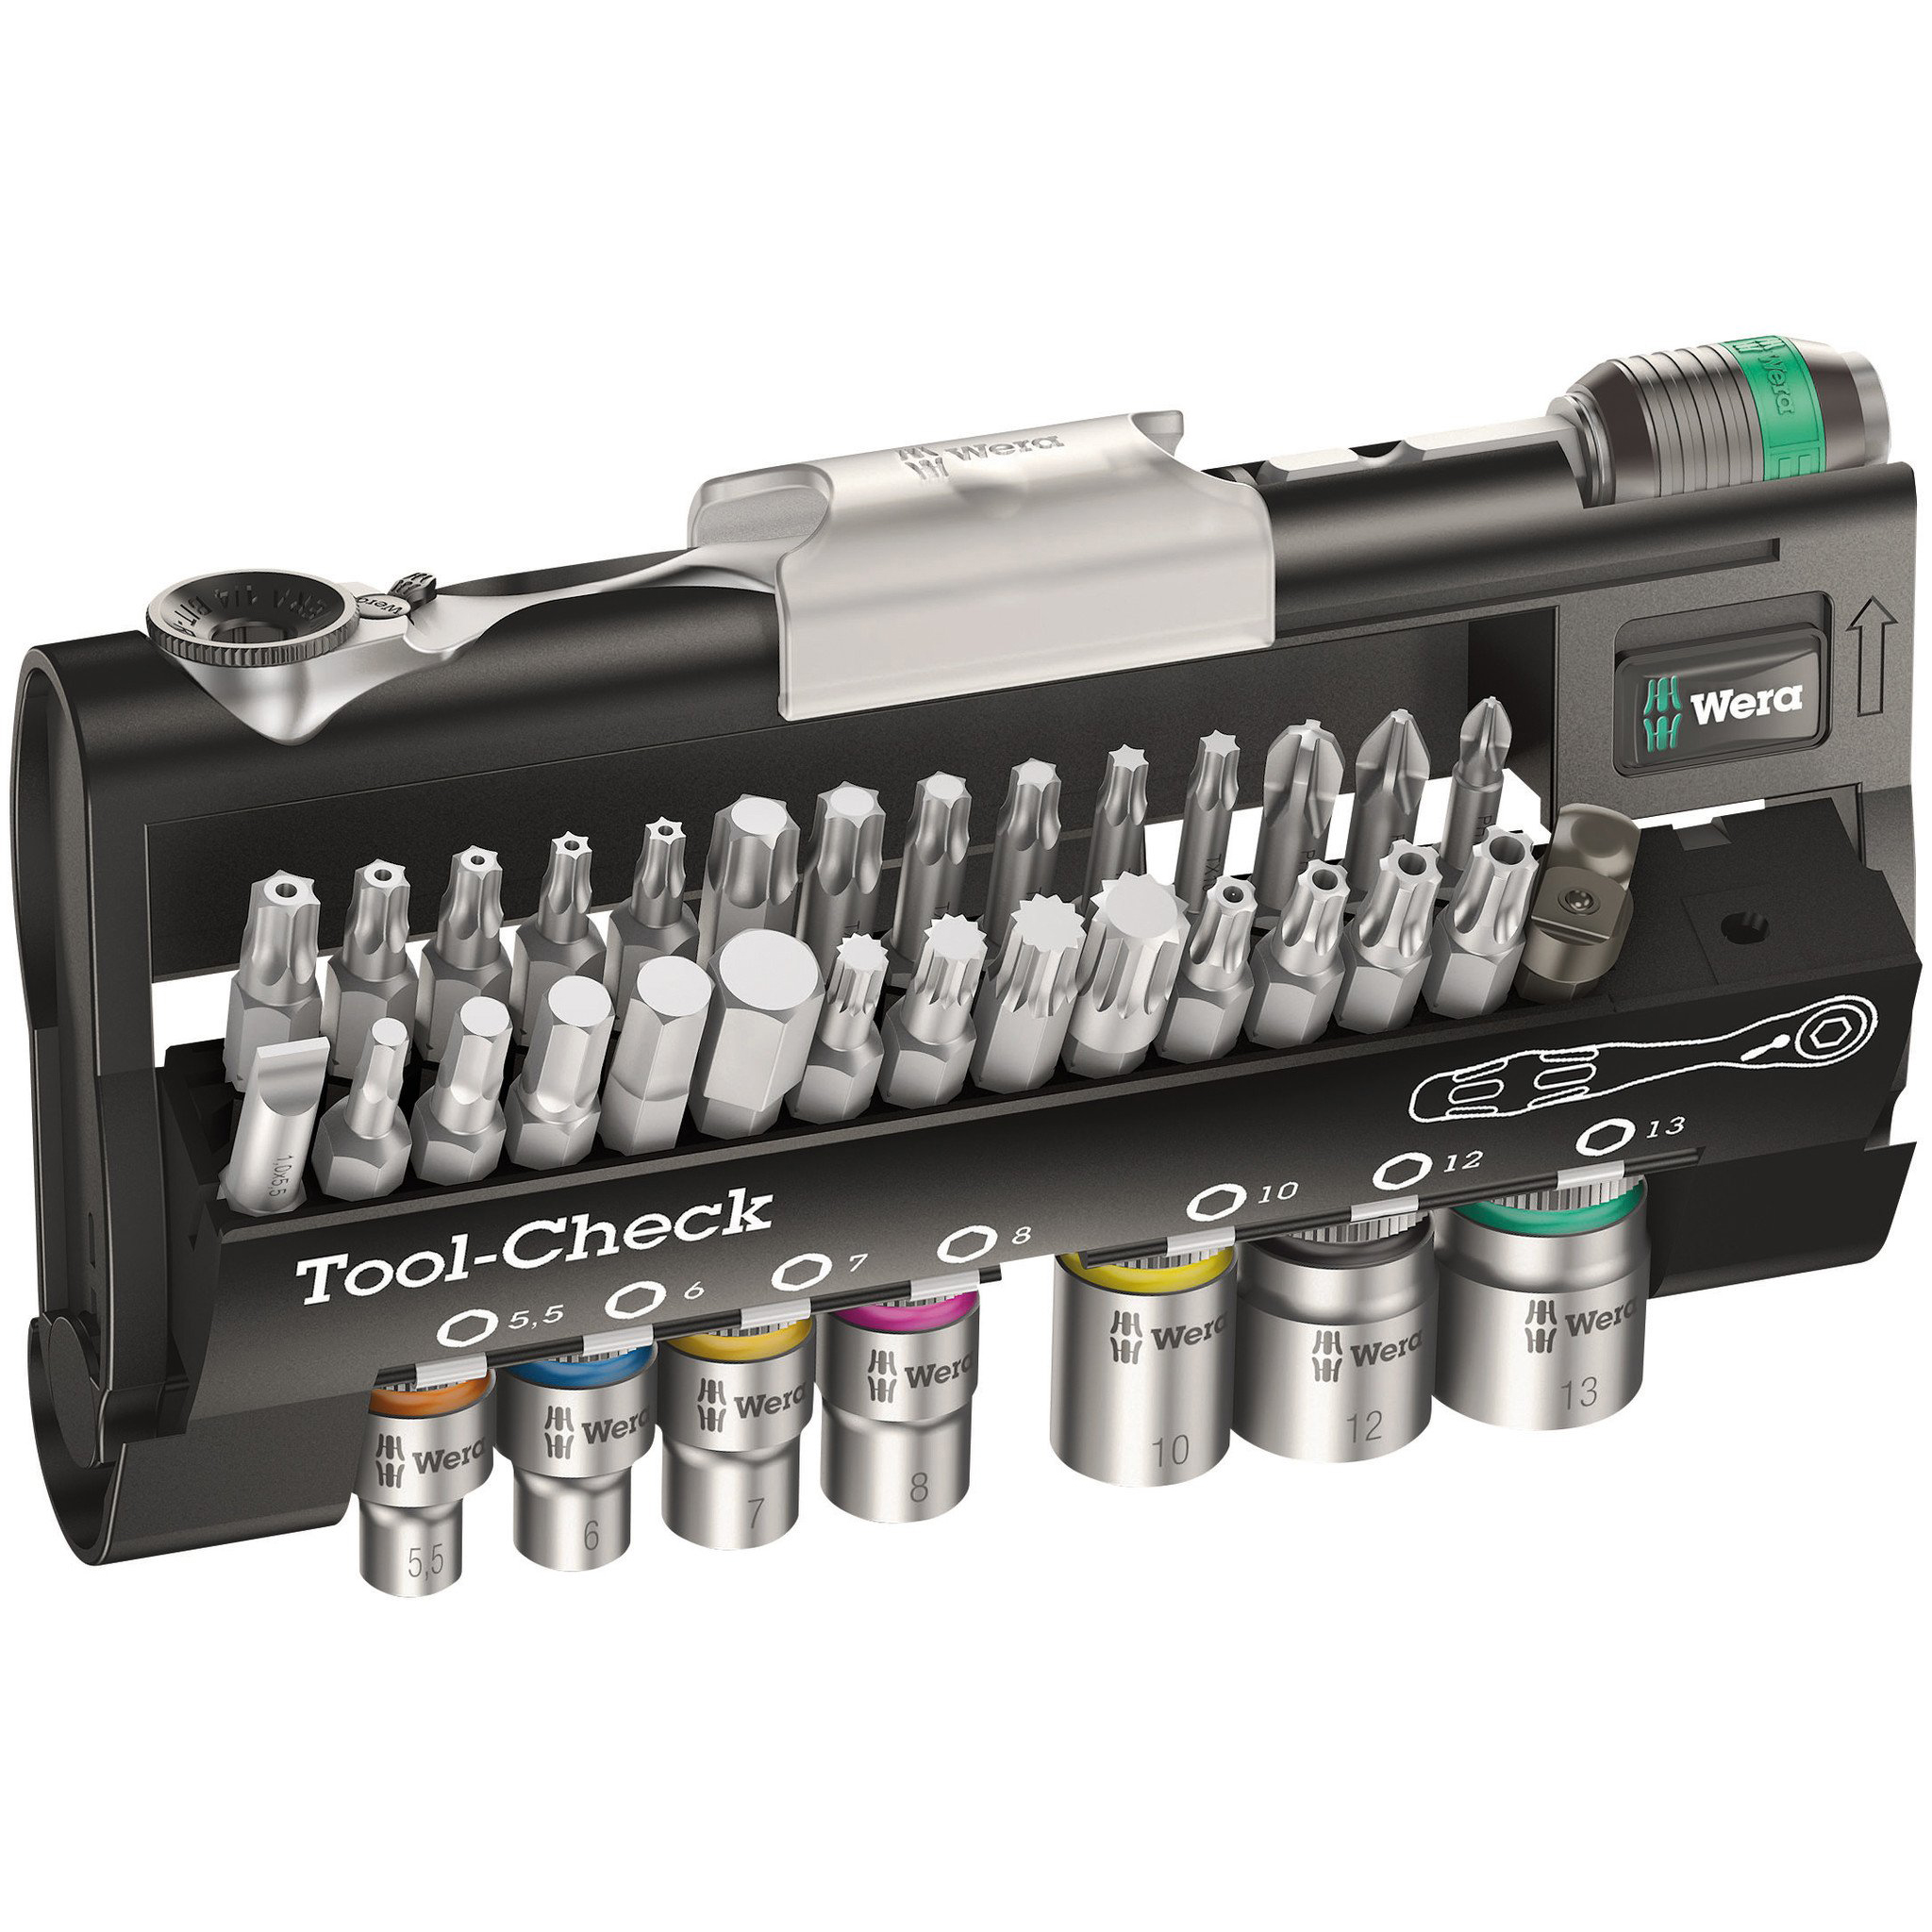 Tool-Check Automotive 1 Wera 05200995001